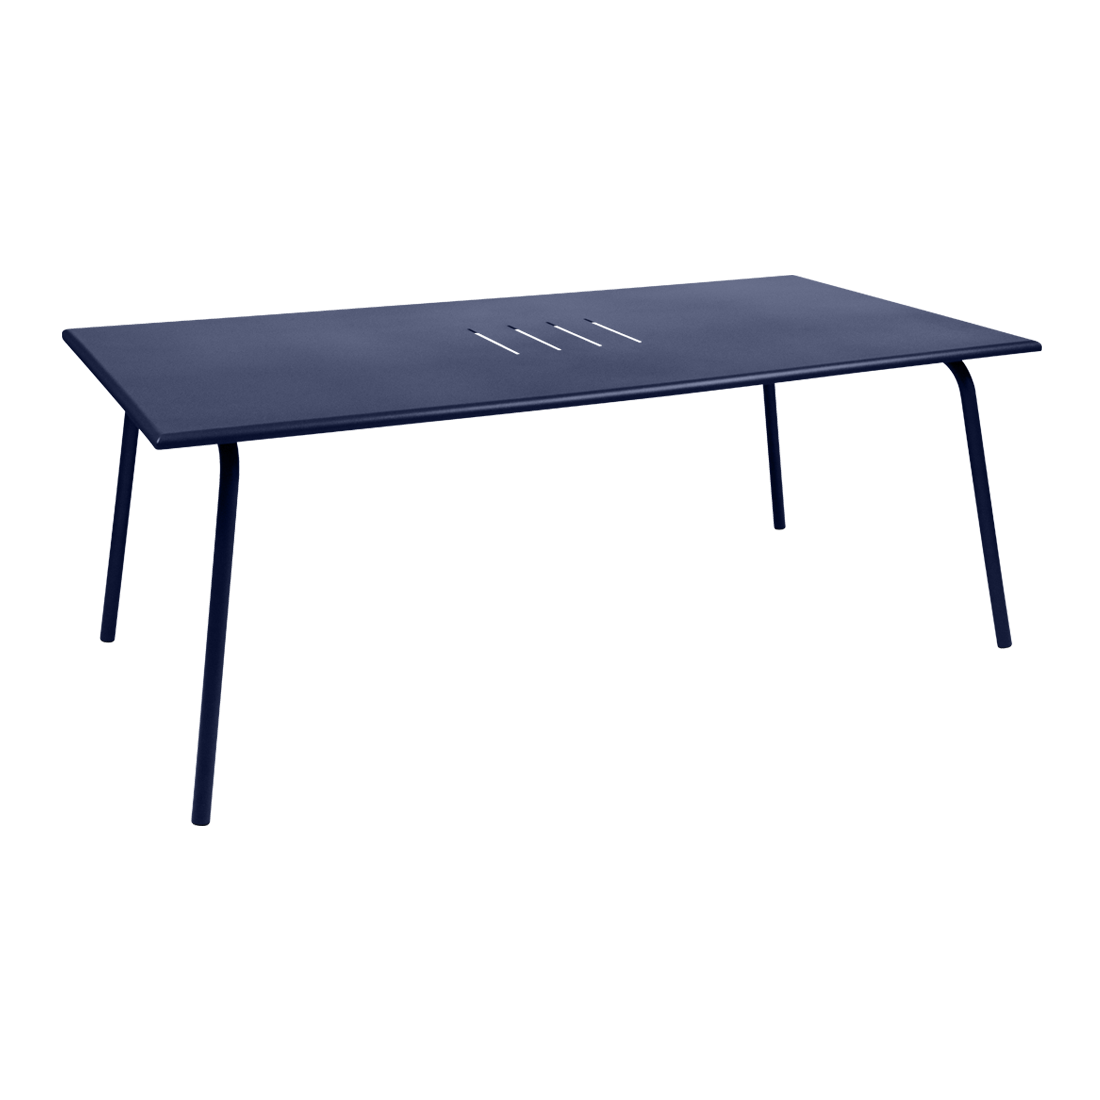 table de jardin, table metal, table rectangulaire, table 8 personnes, table bleu